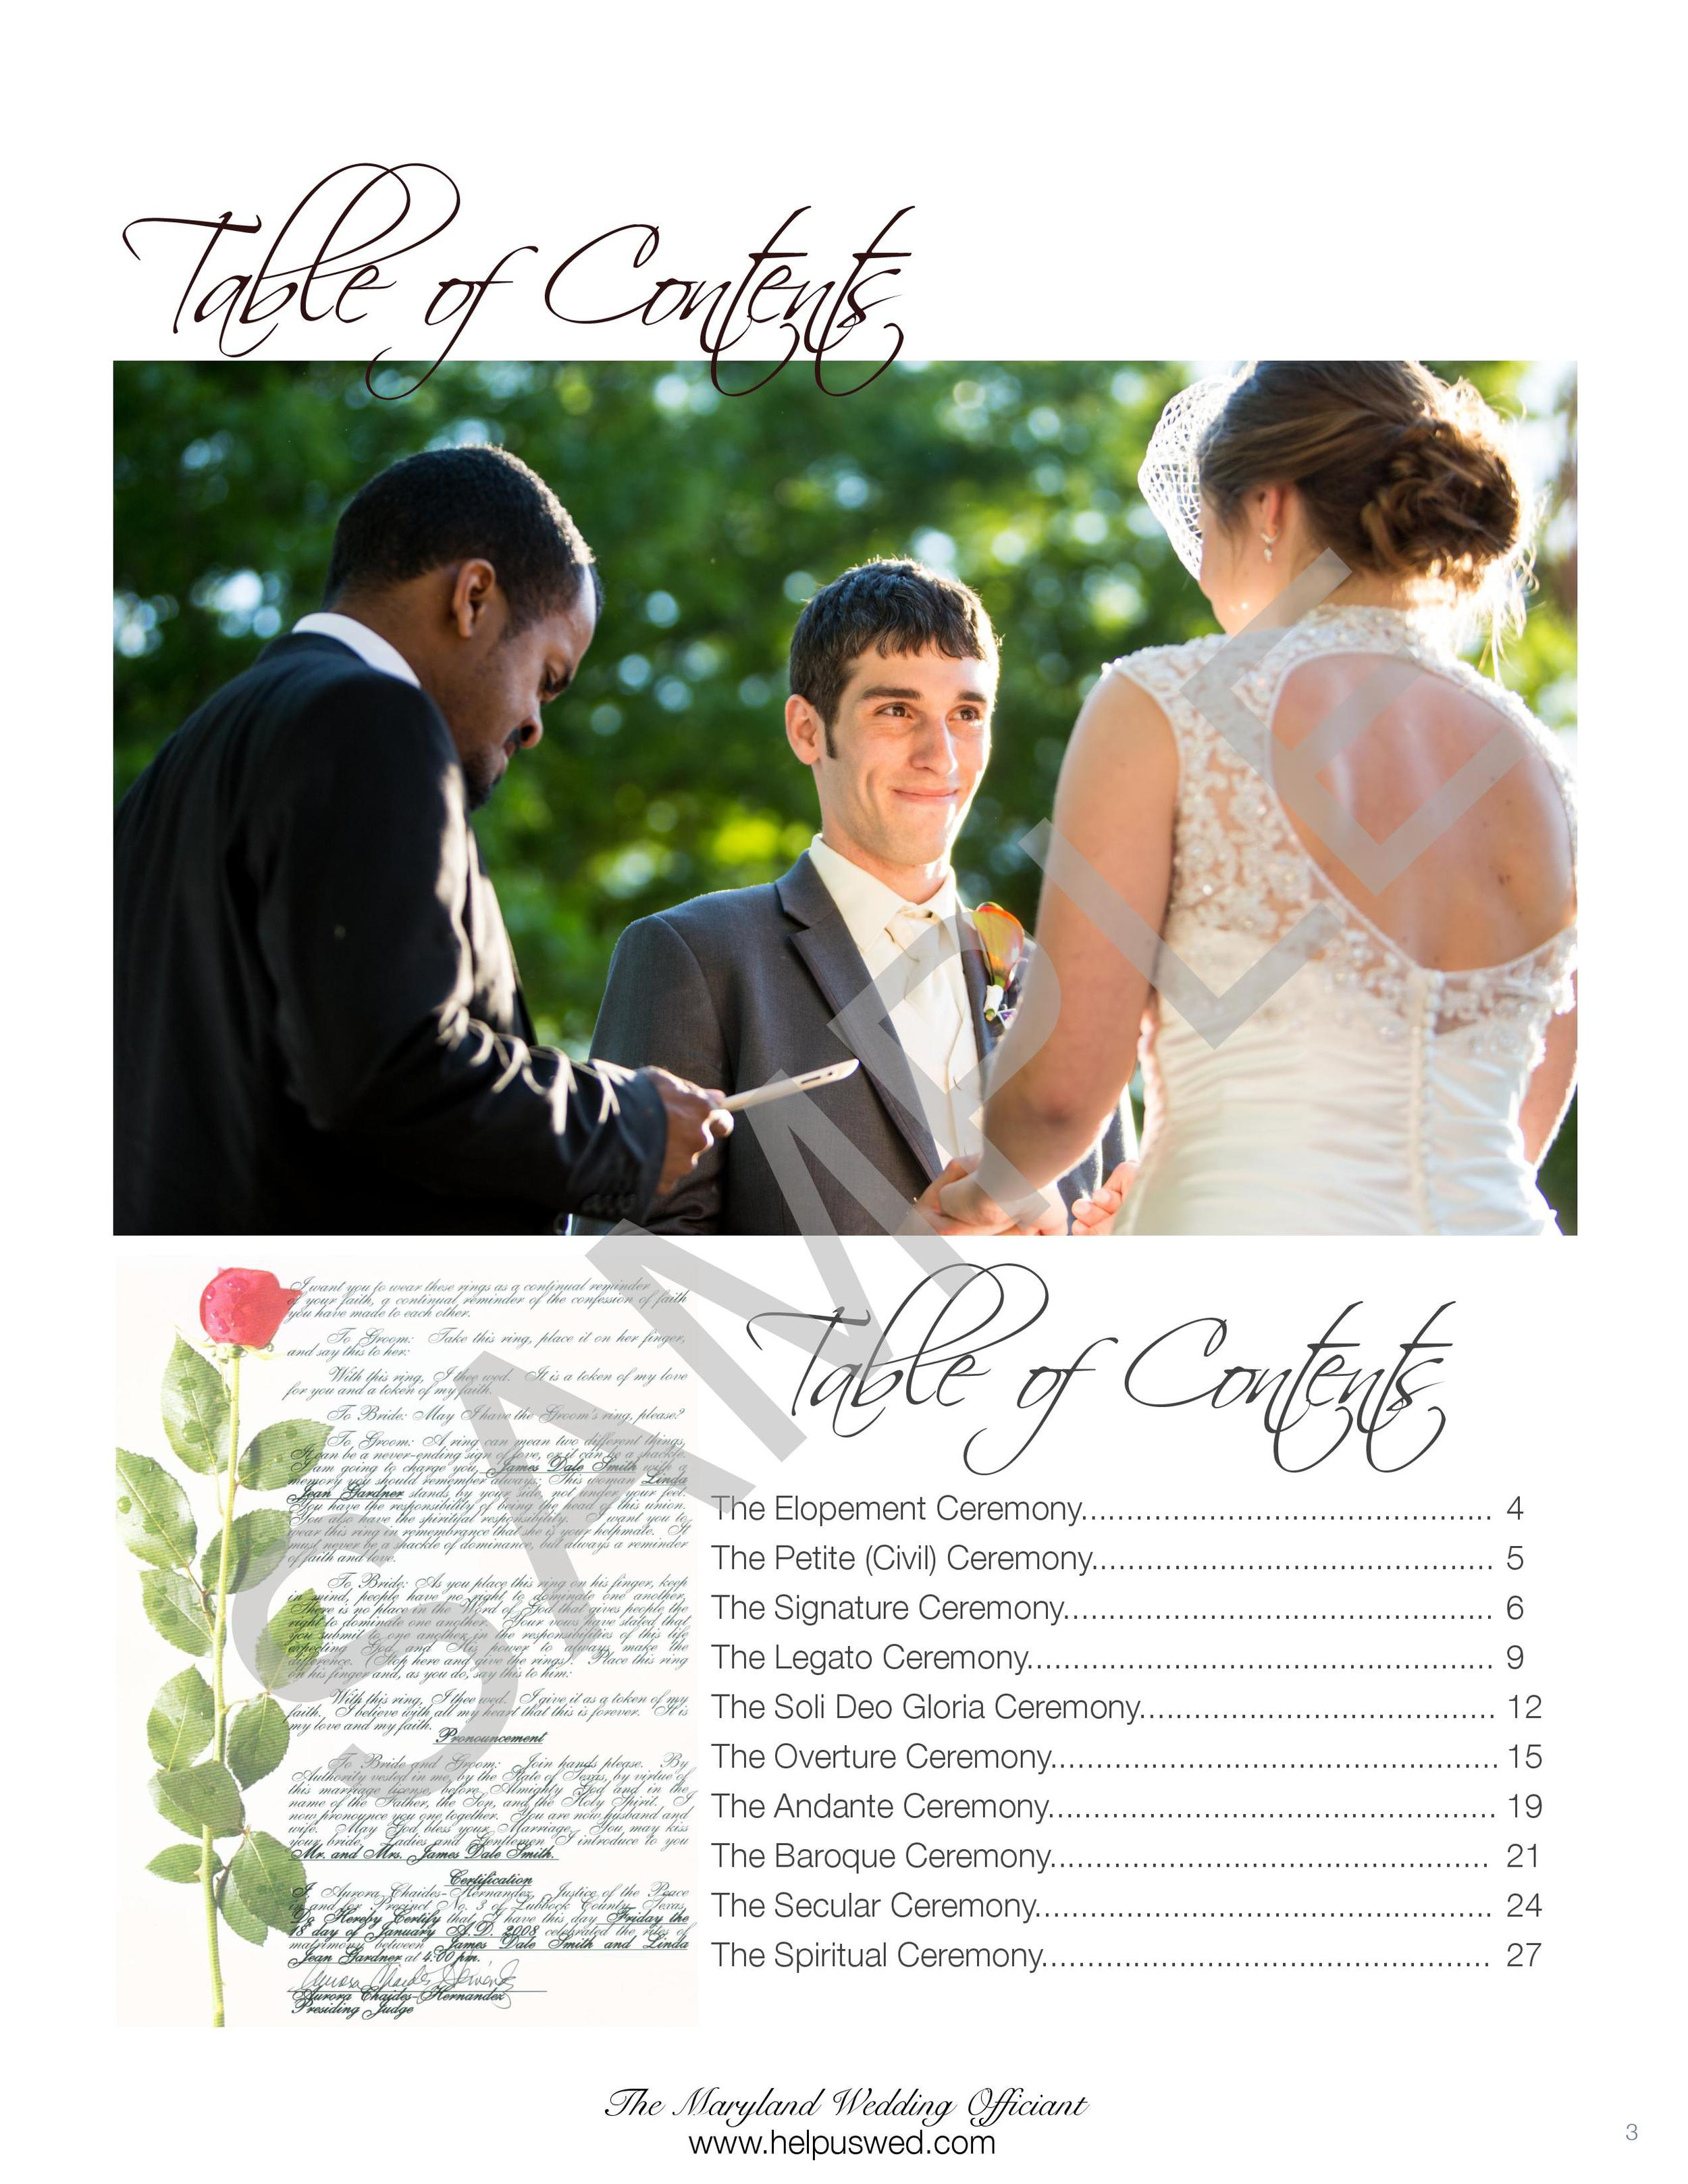 Ceremony Templates Sneak Peek-page-003.jpg